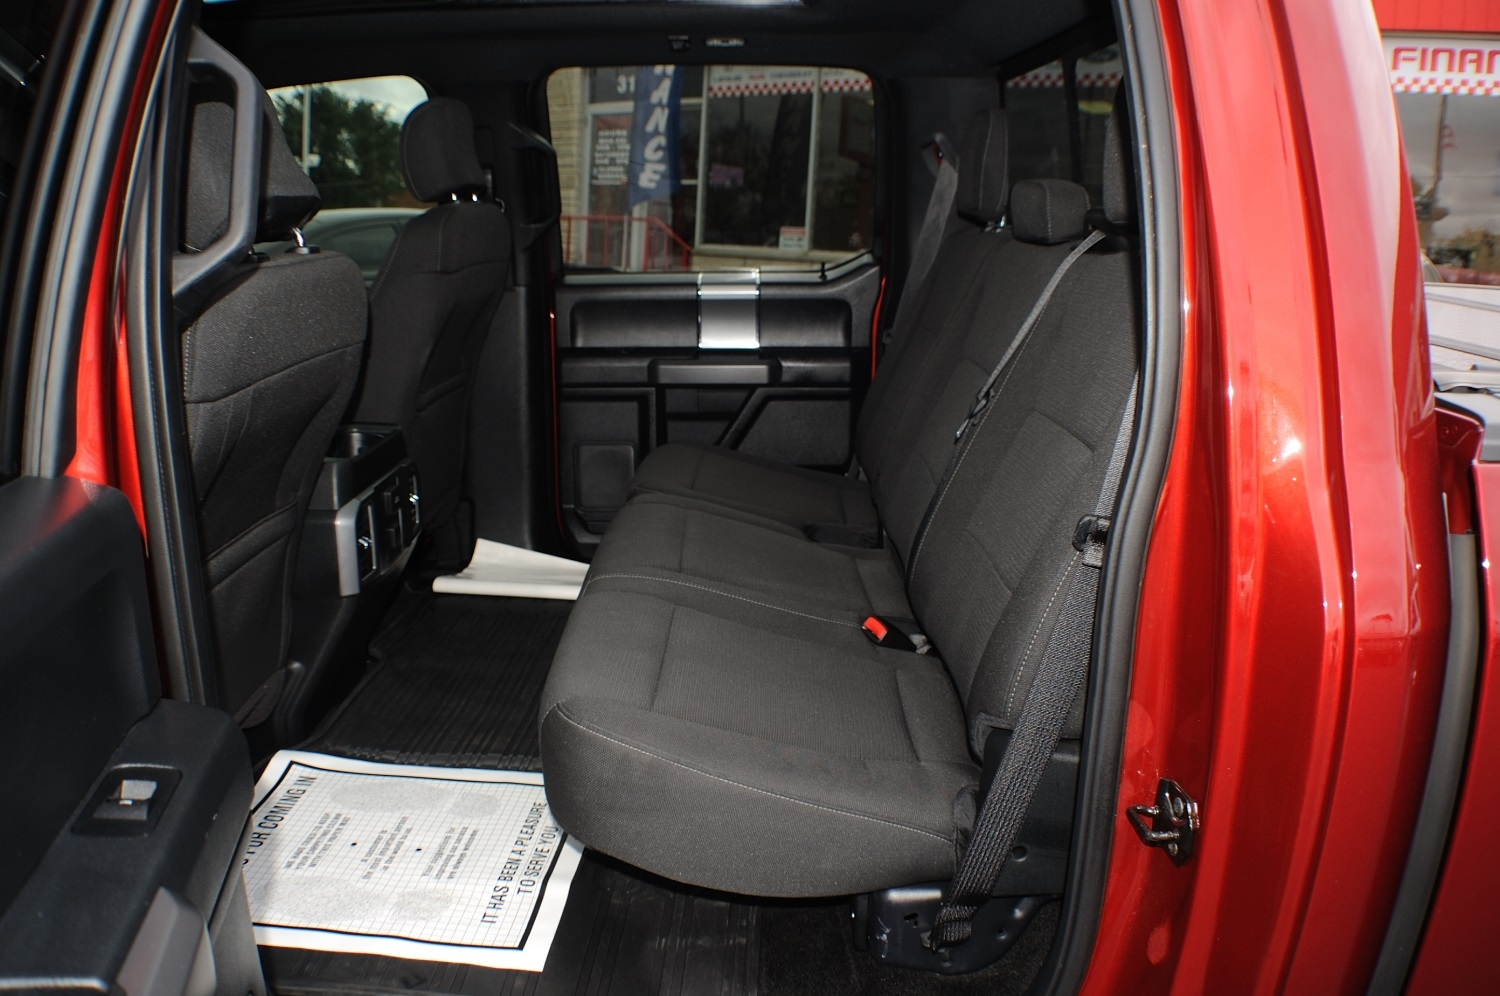 2015 Ford F150 XLT Red Used 4x4 Truck Sale Libertyville Lincolnshire Lindenhurst